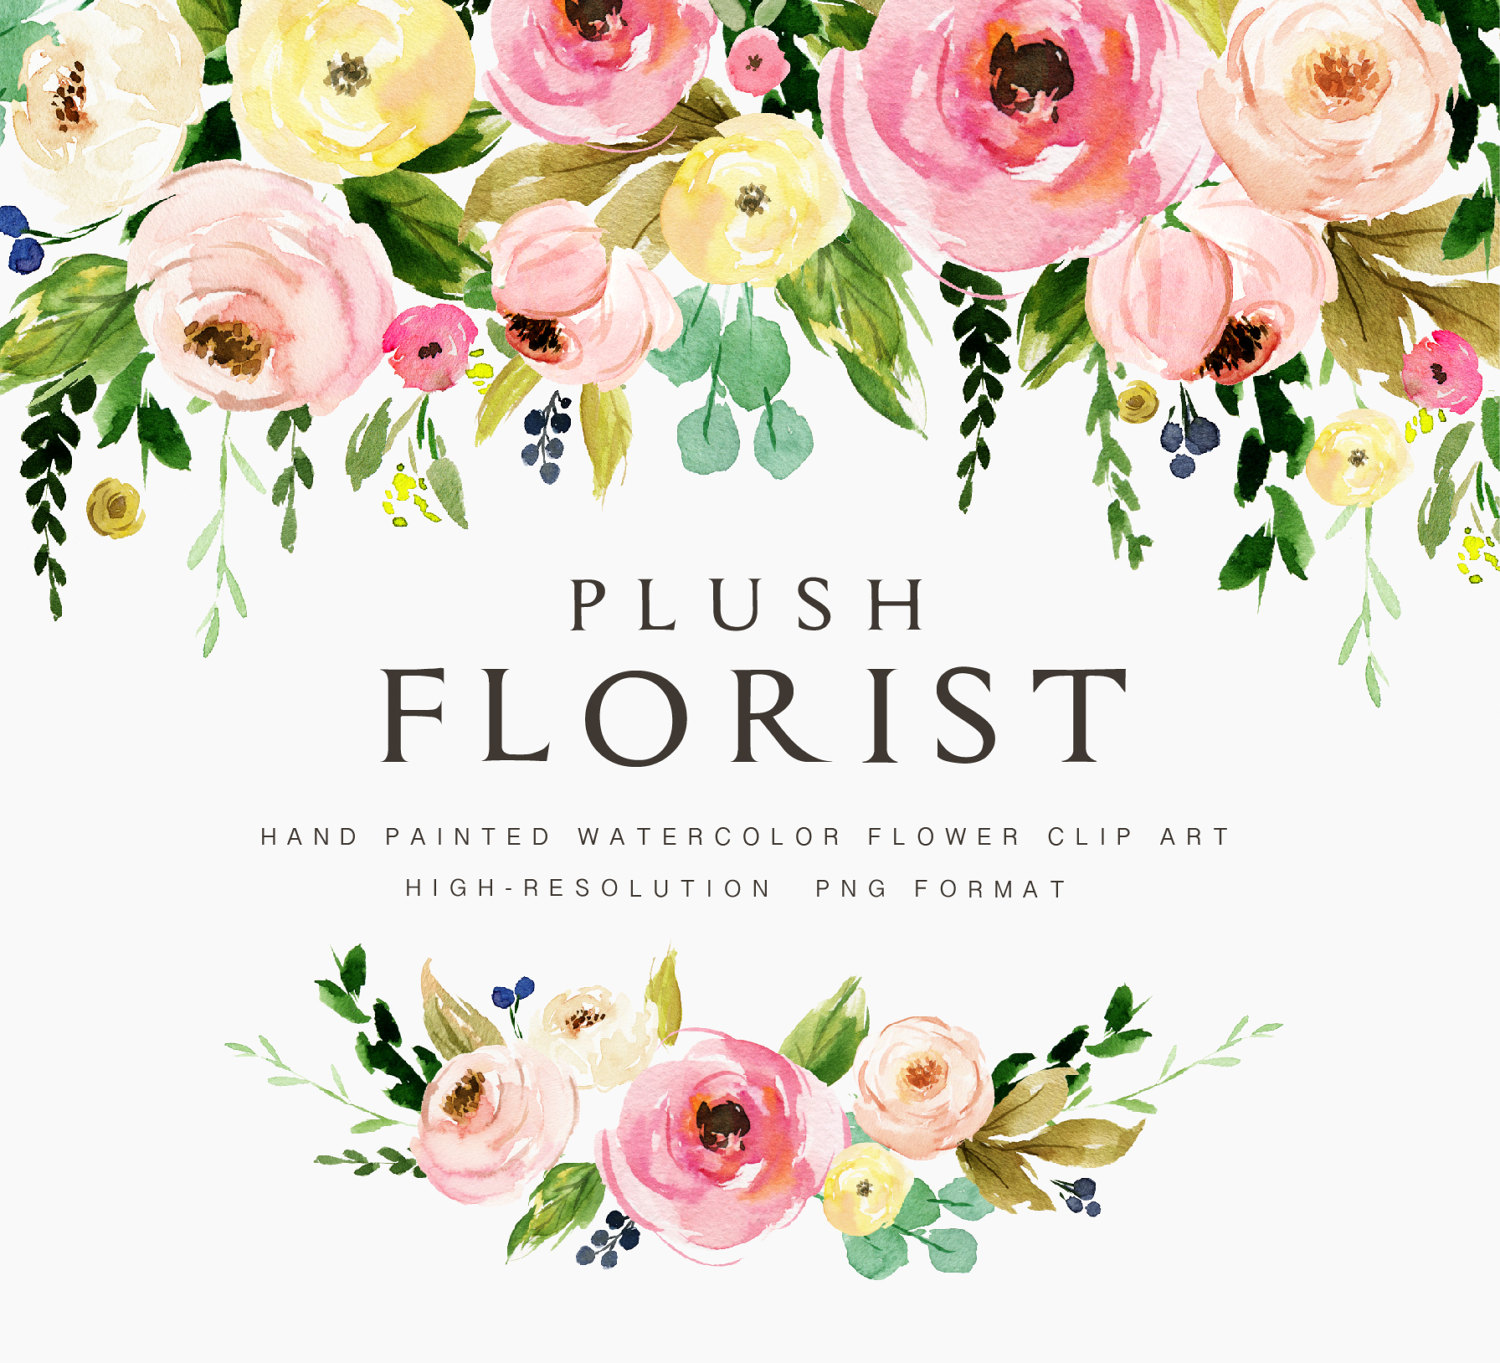 hight resolution of 1500x1363 rustic clipart watercolor flower watercolor flowers png free